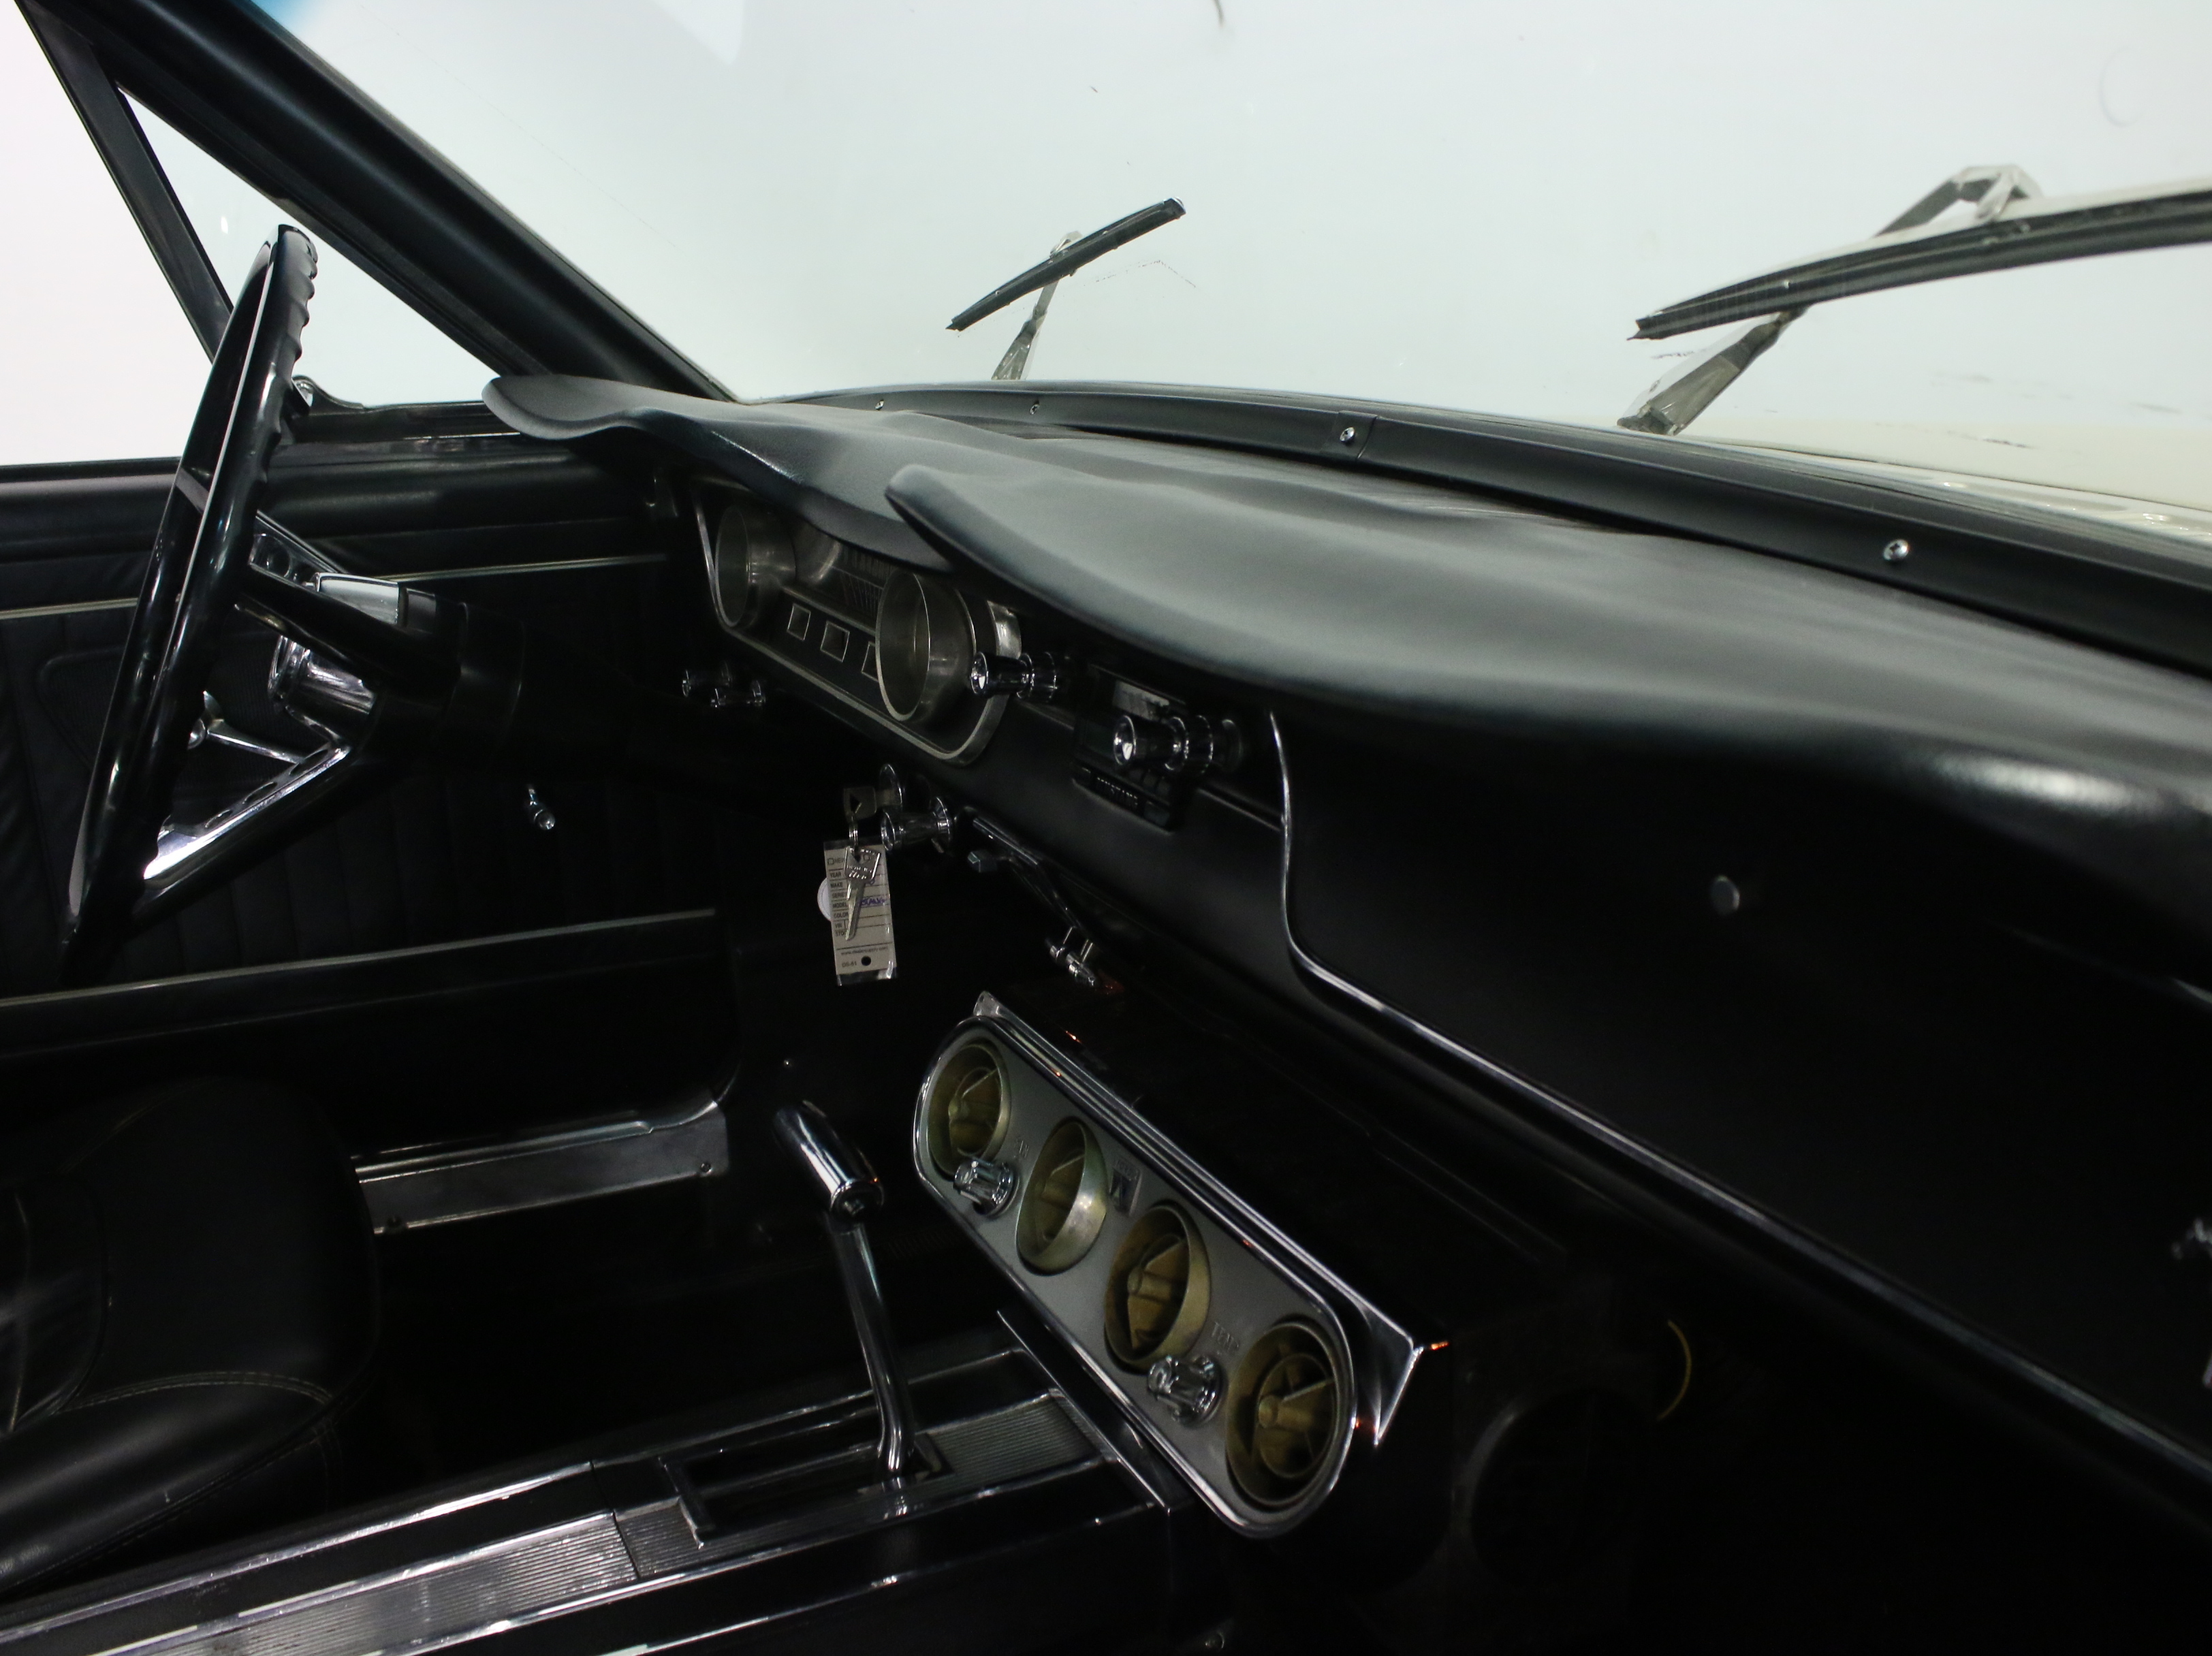 1965 Ford Mustang : REAL '64 1/2 W/ PROPER F-CODE V8, AUTO, COLD AC, WELL MAINTAINED & GREAT DRIVER!